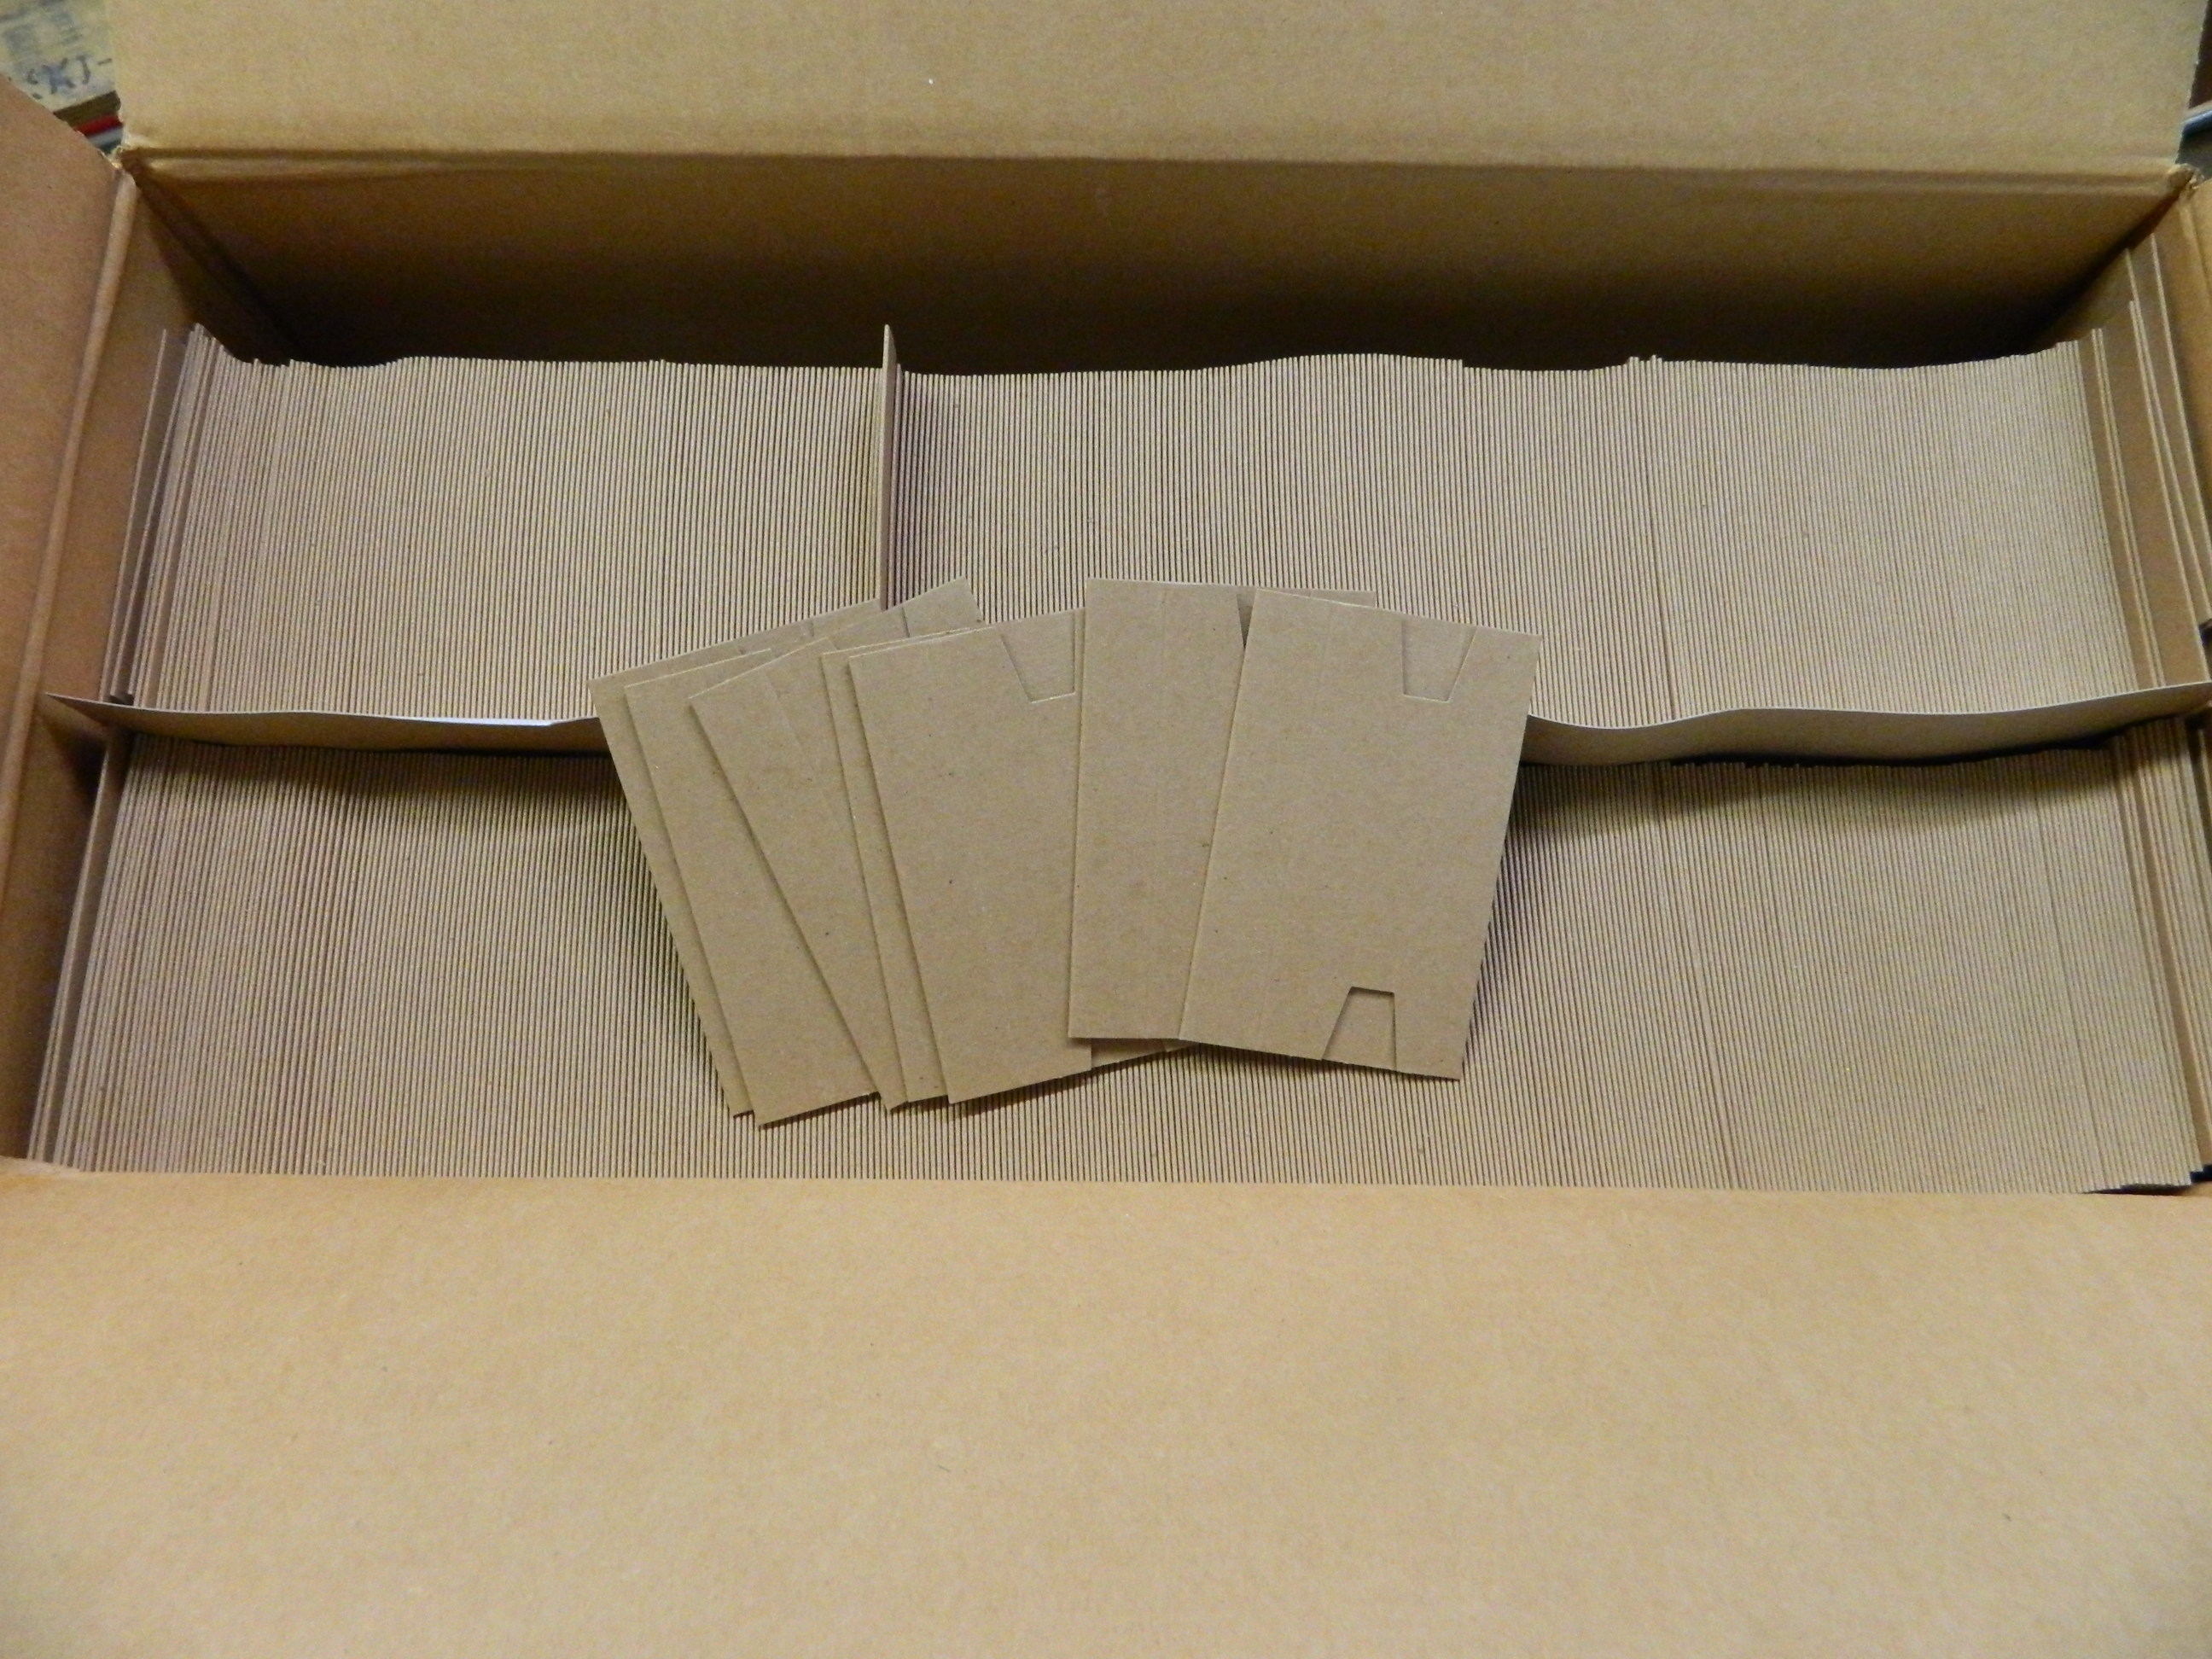 AK/SKS 7.62 x 39 Cardboards- NEW- 700 Ct. SALE